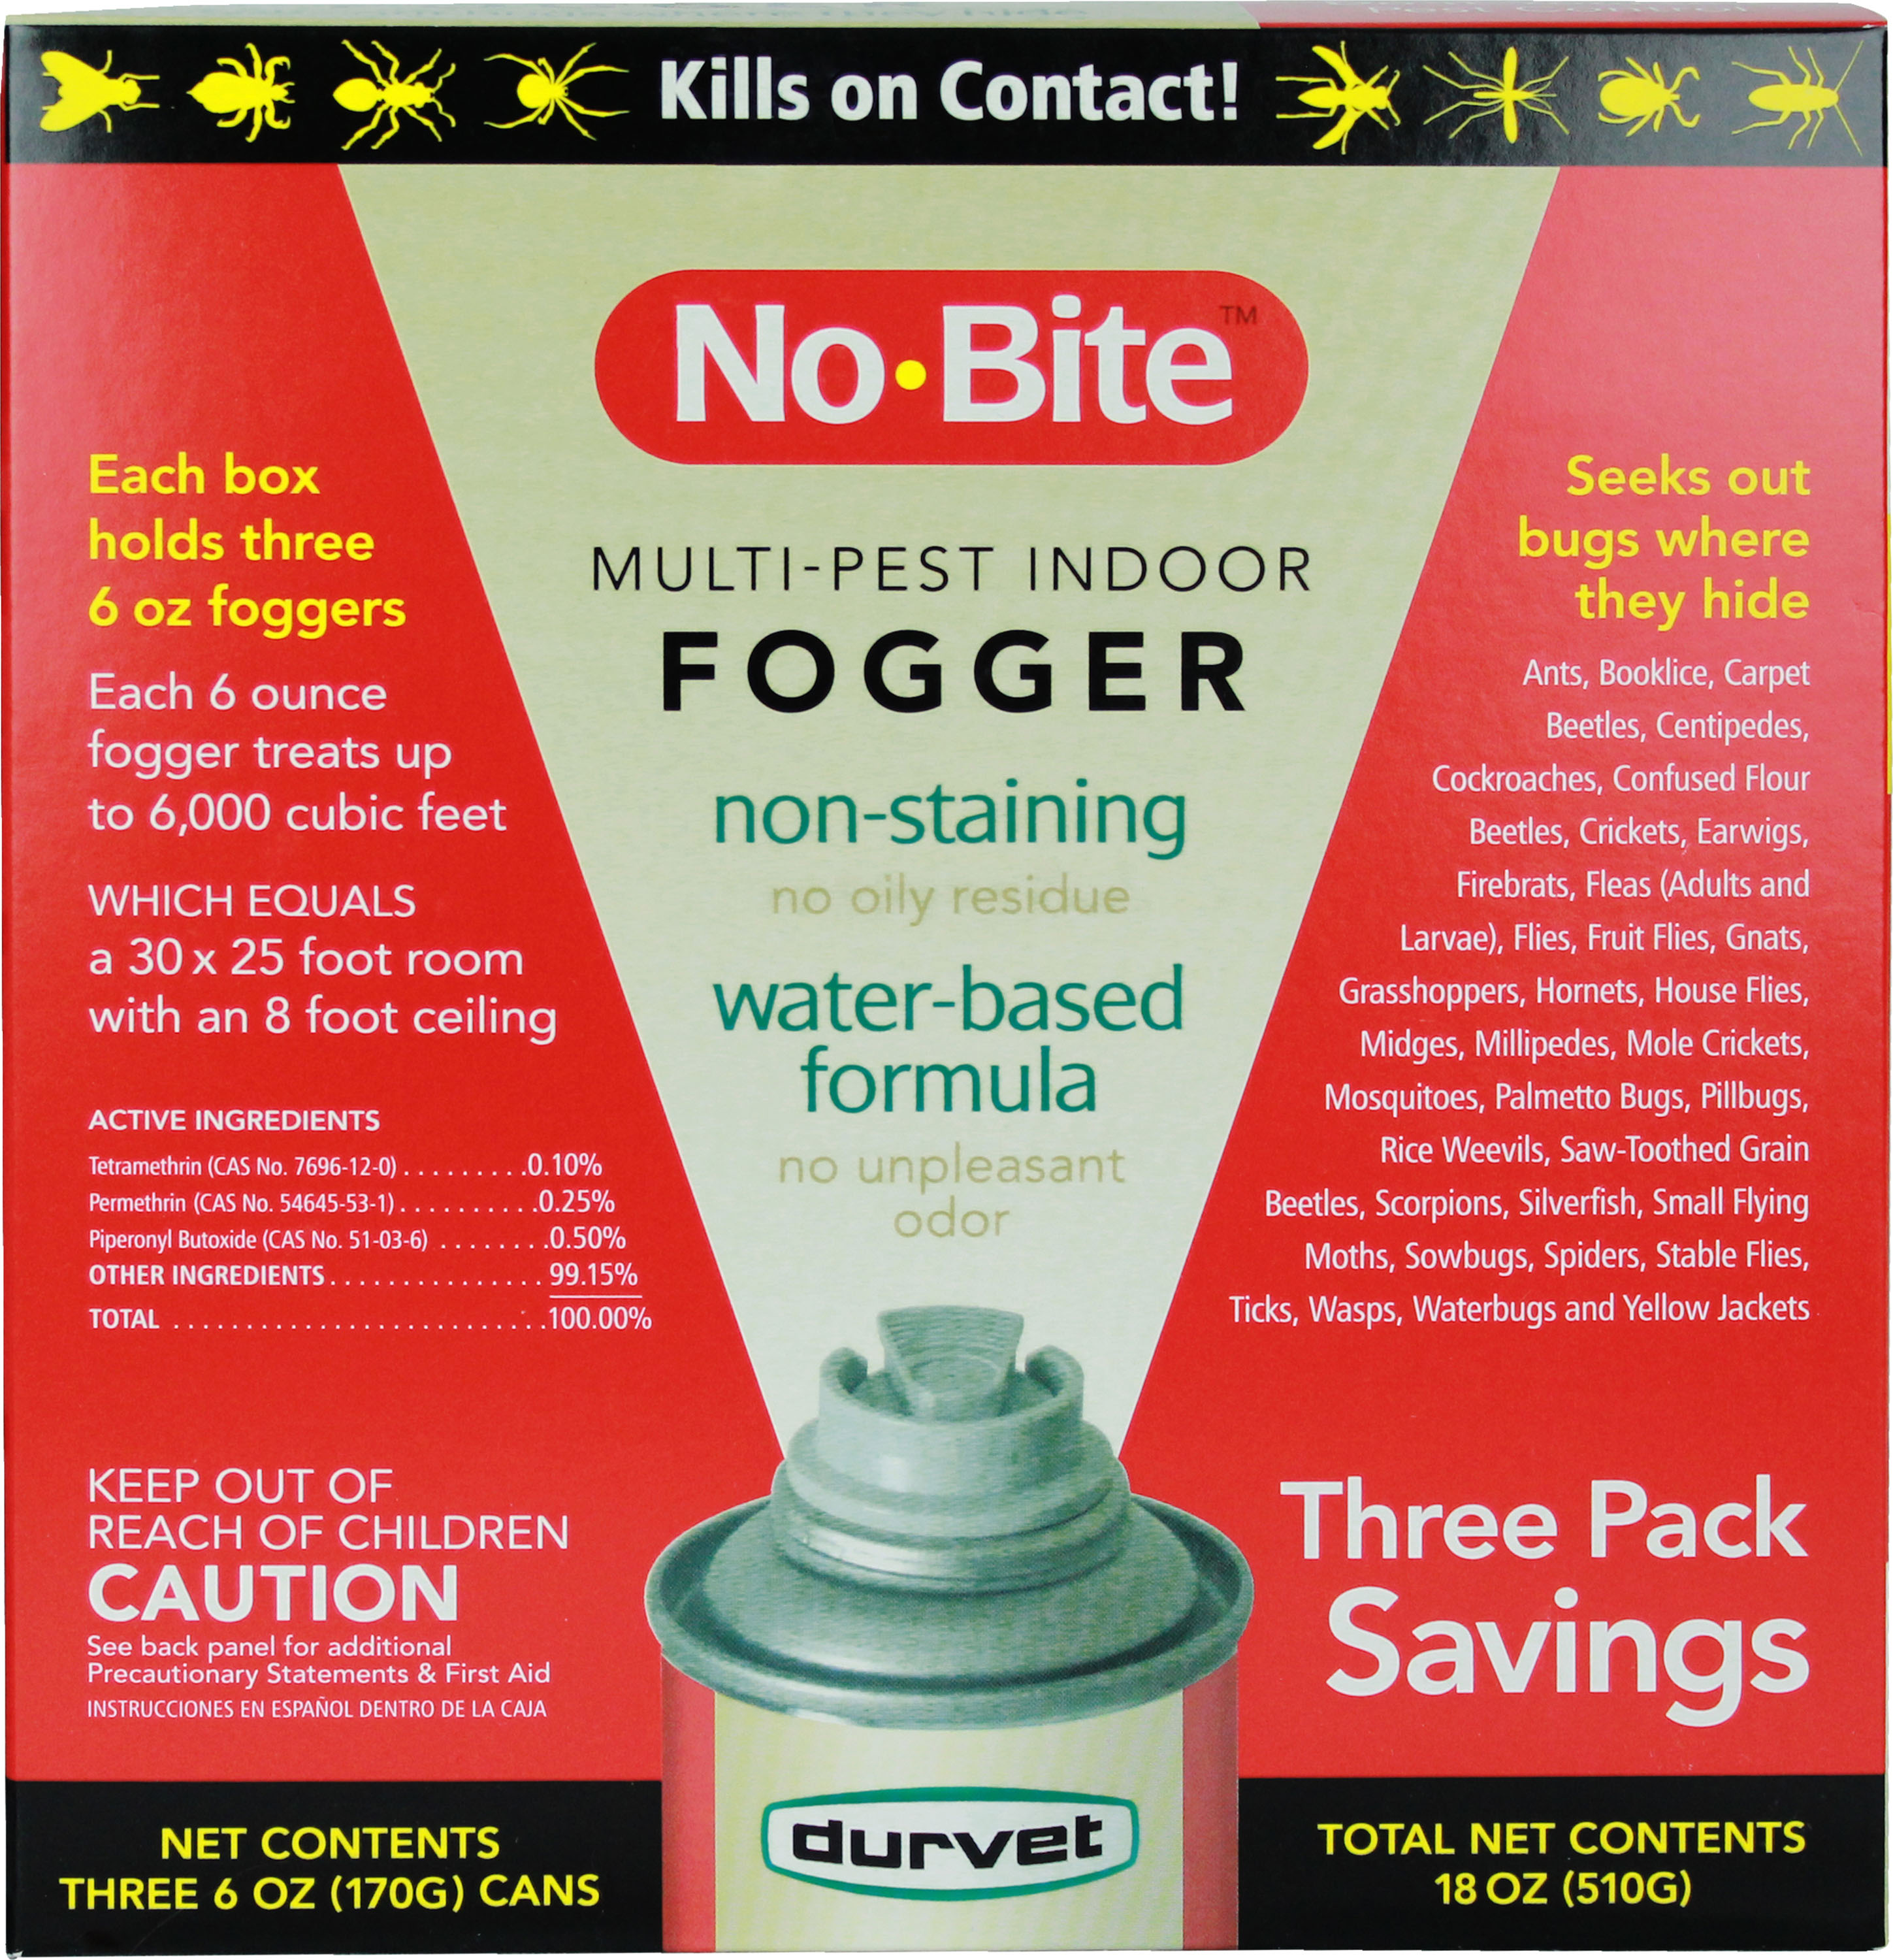 NO-BITE MULTI-PEST INDOOR FOGGER